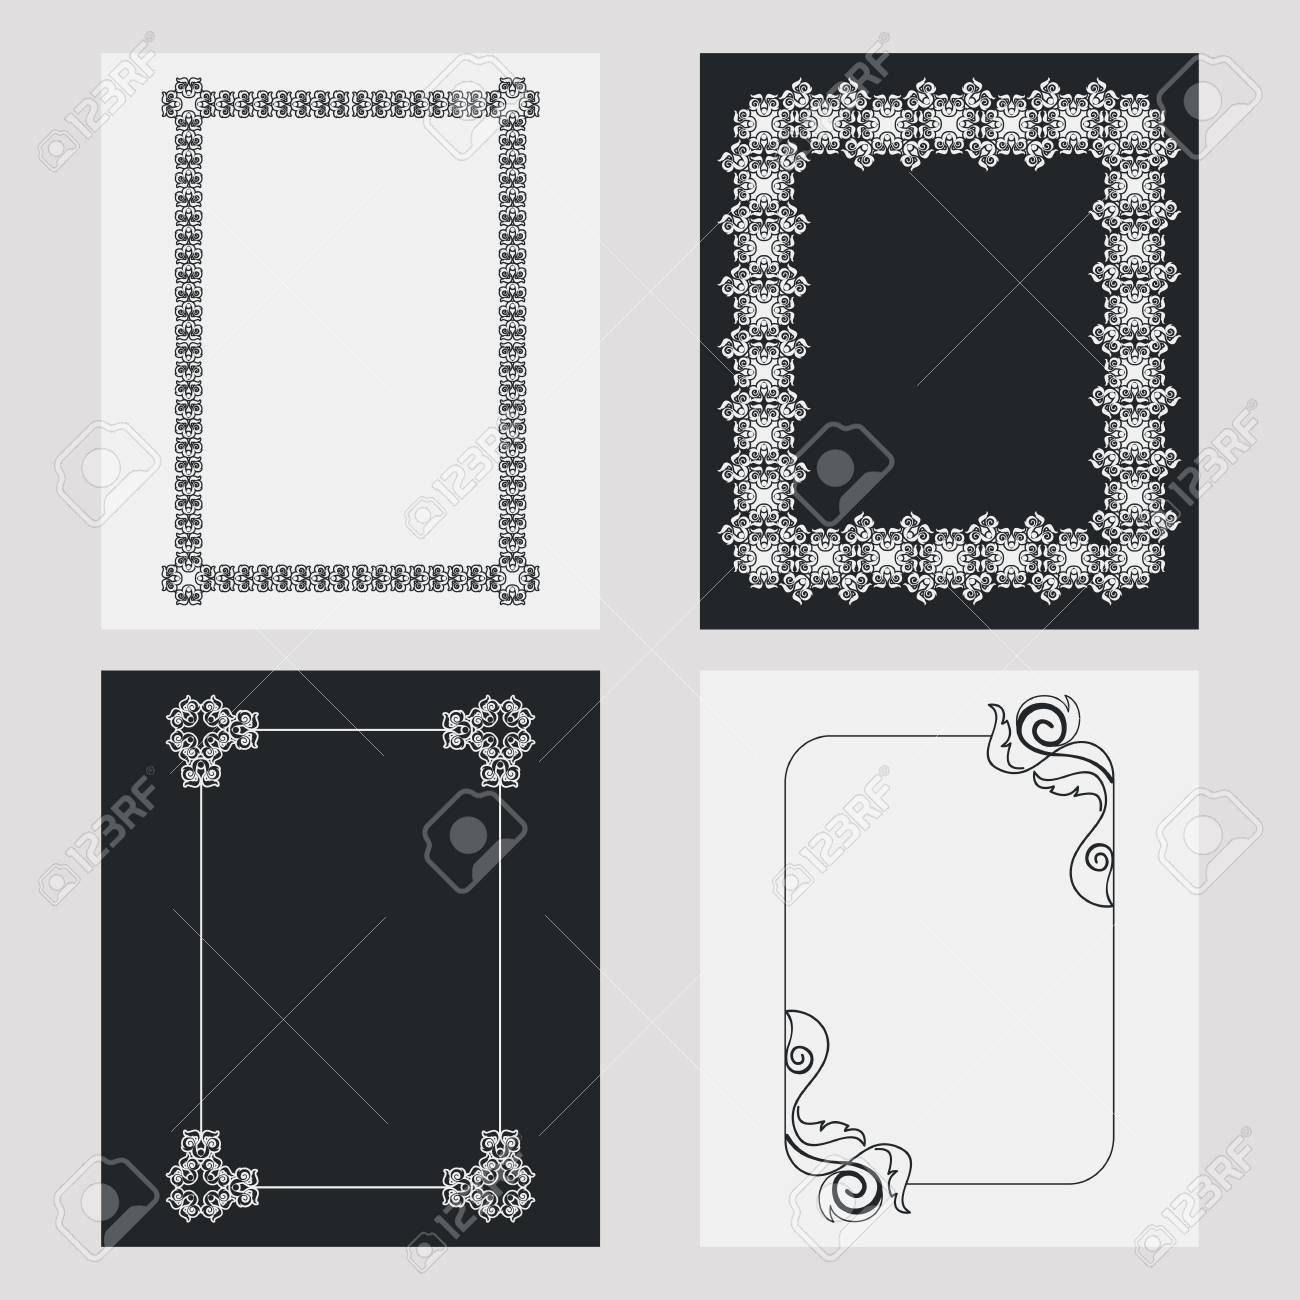 set of silhouette vertical frames design element for banners